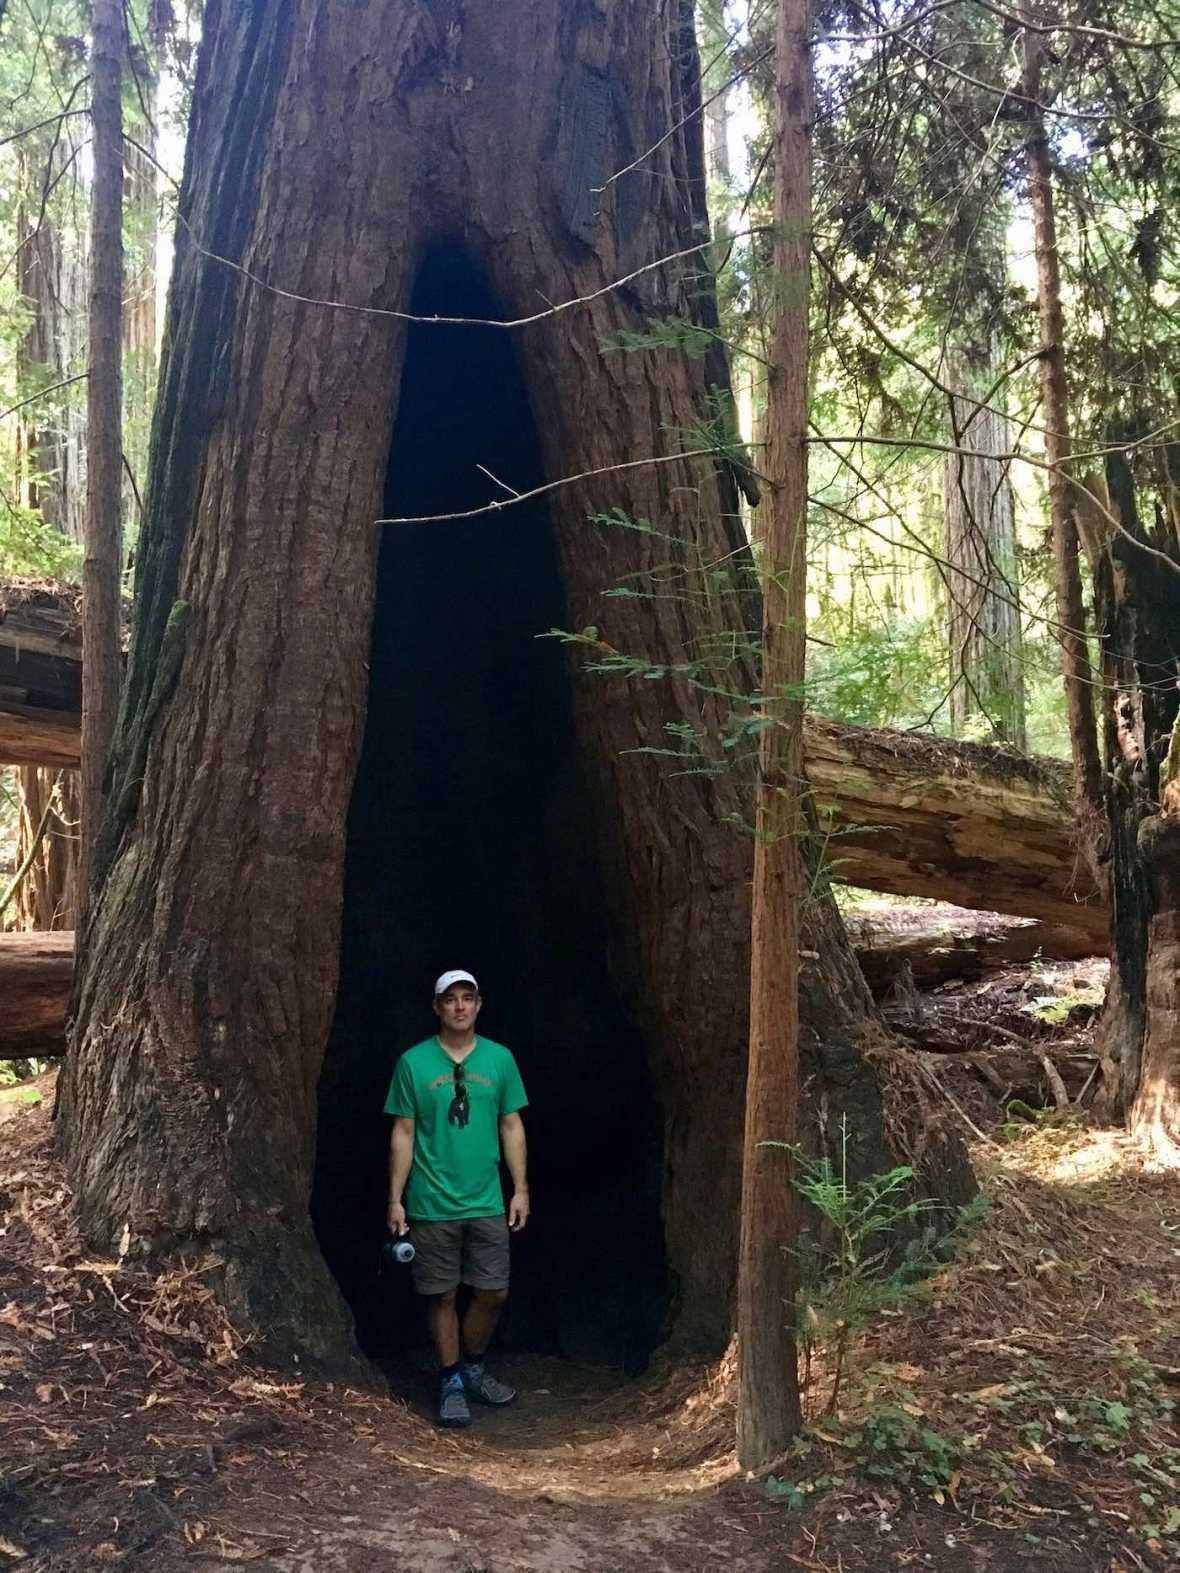 Hollow tree at Big Hendy Redwoods Grove at California's Hendy Woods State Park